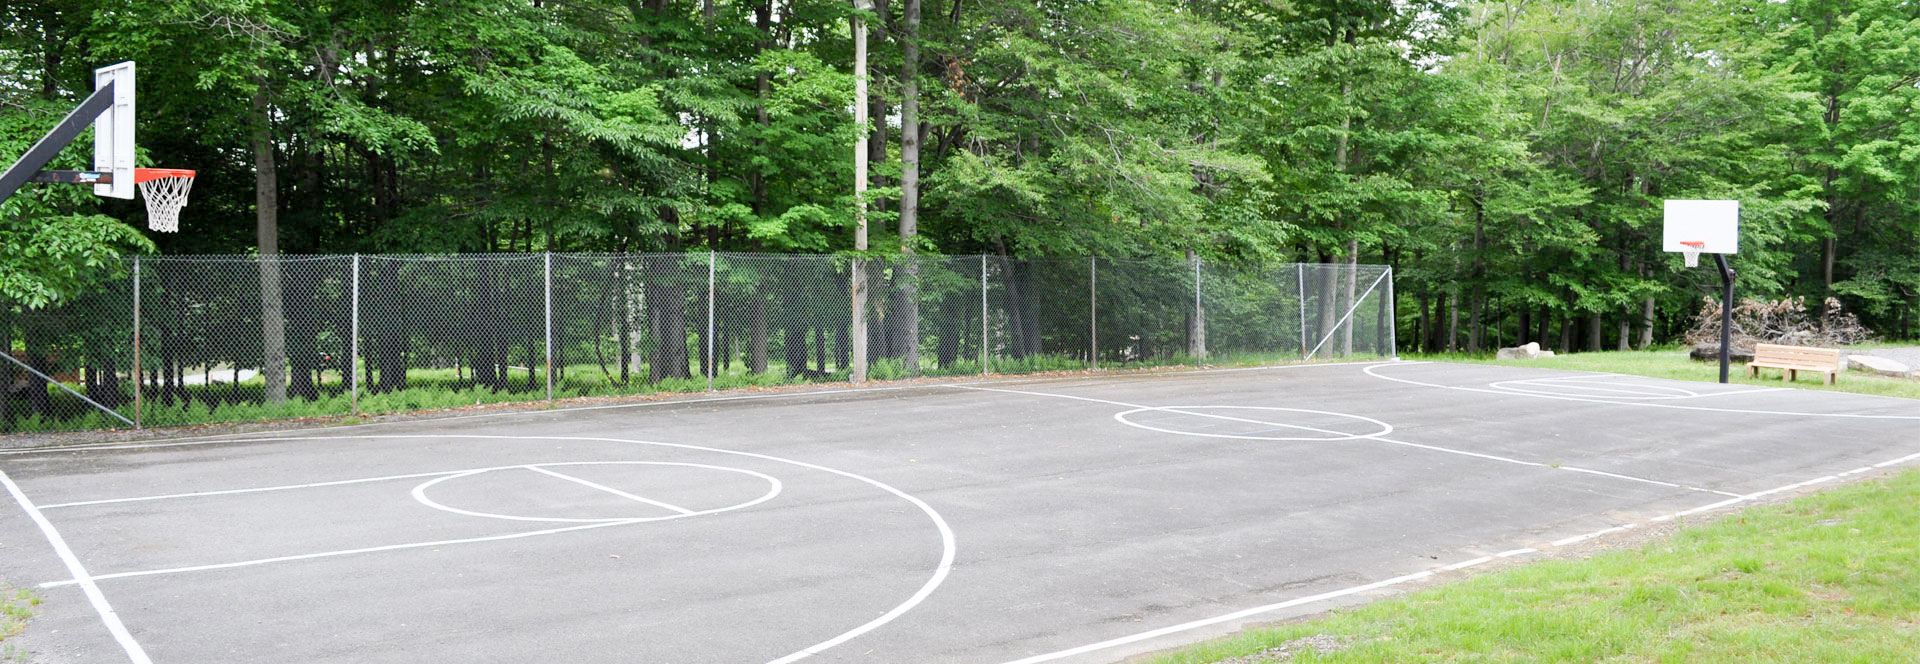 eagle-lake-beach1-basketball-courts